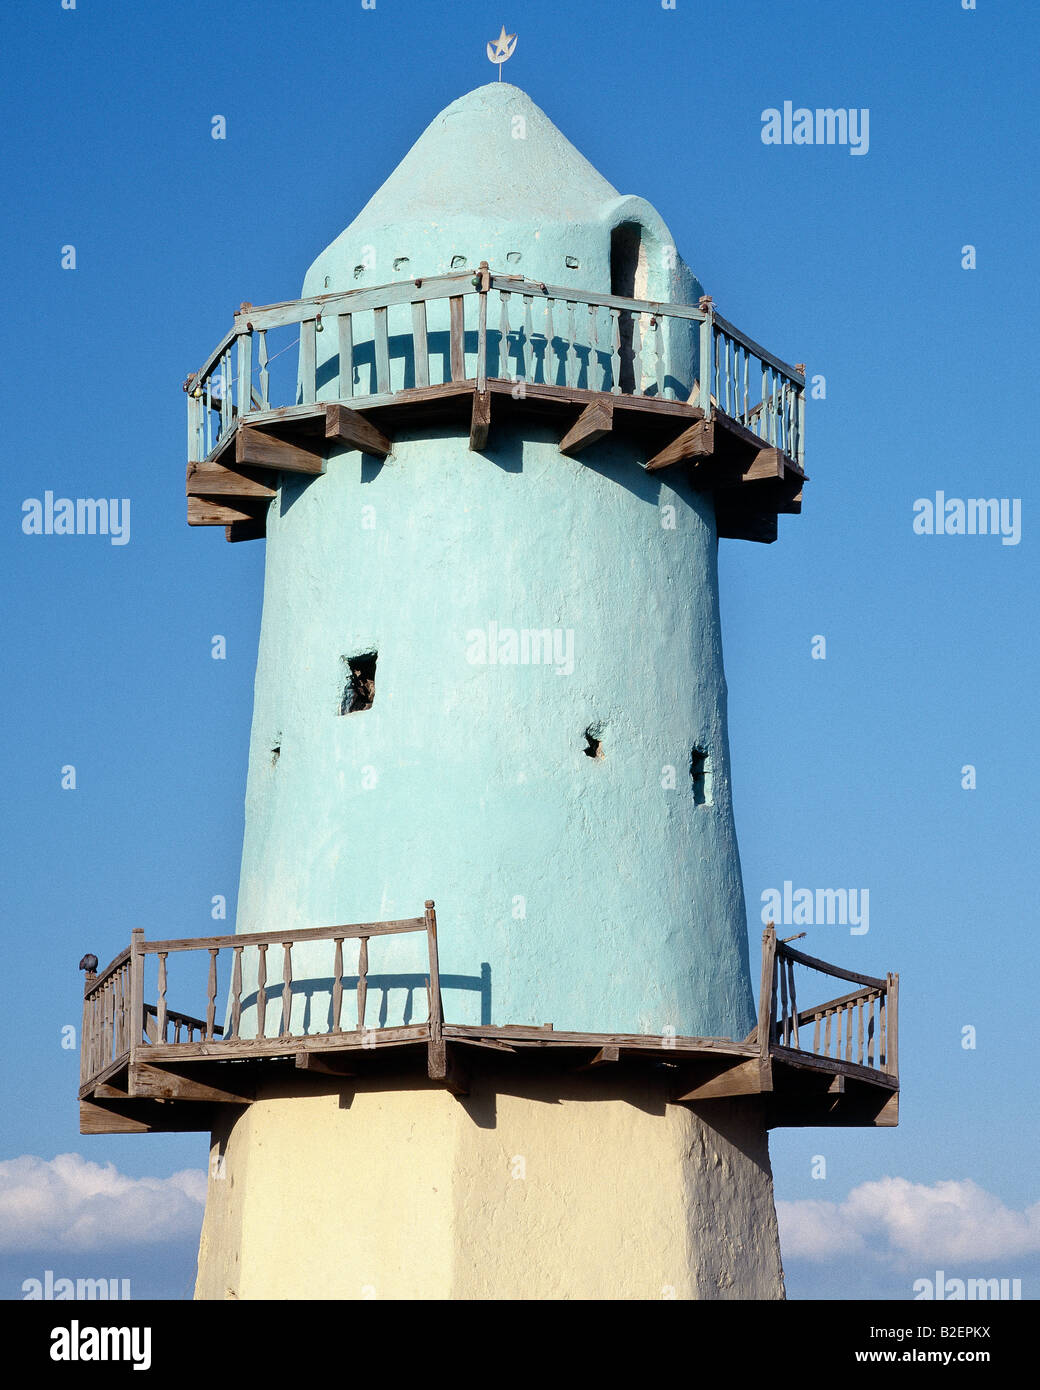 The minaret of the old mosque at Aysaita, a hot, dusty town, which is the administrative centre of the nomadic Afar - Stock Image